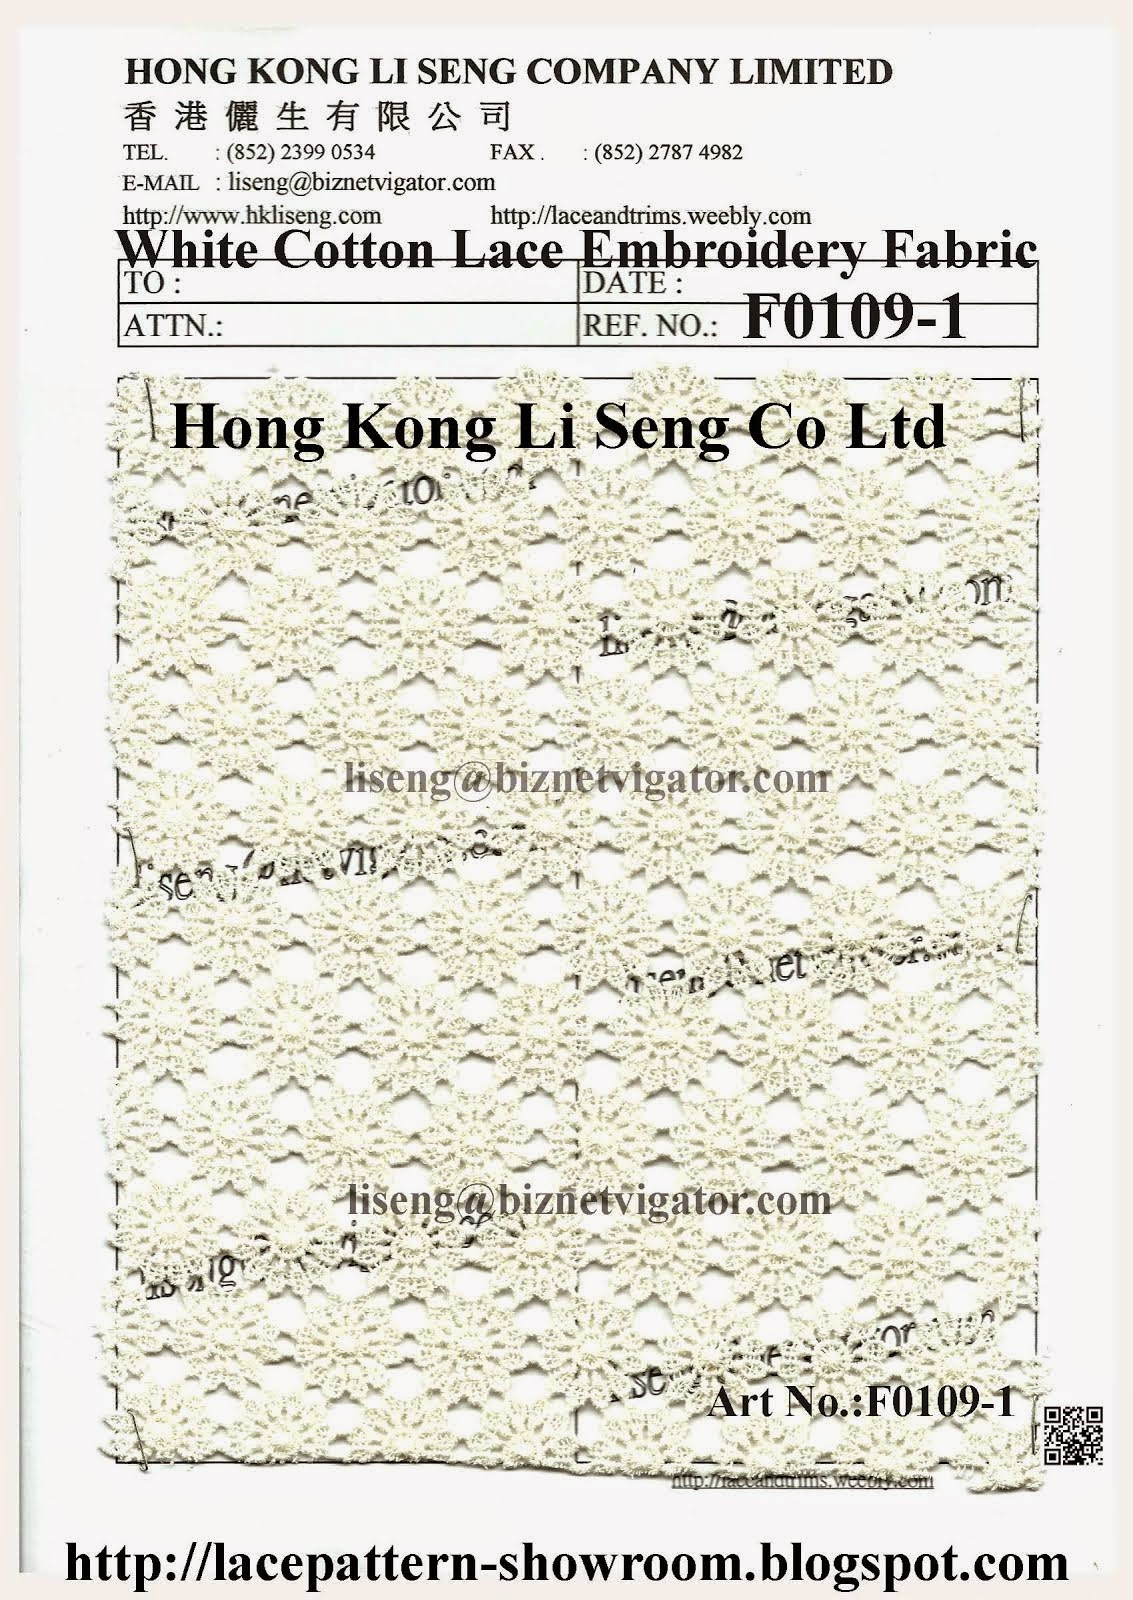 White Cotton Lace Embroidery Fabric Factory - Hong Kong Li Seng Co Ltd